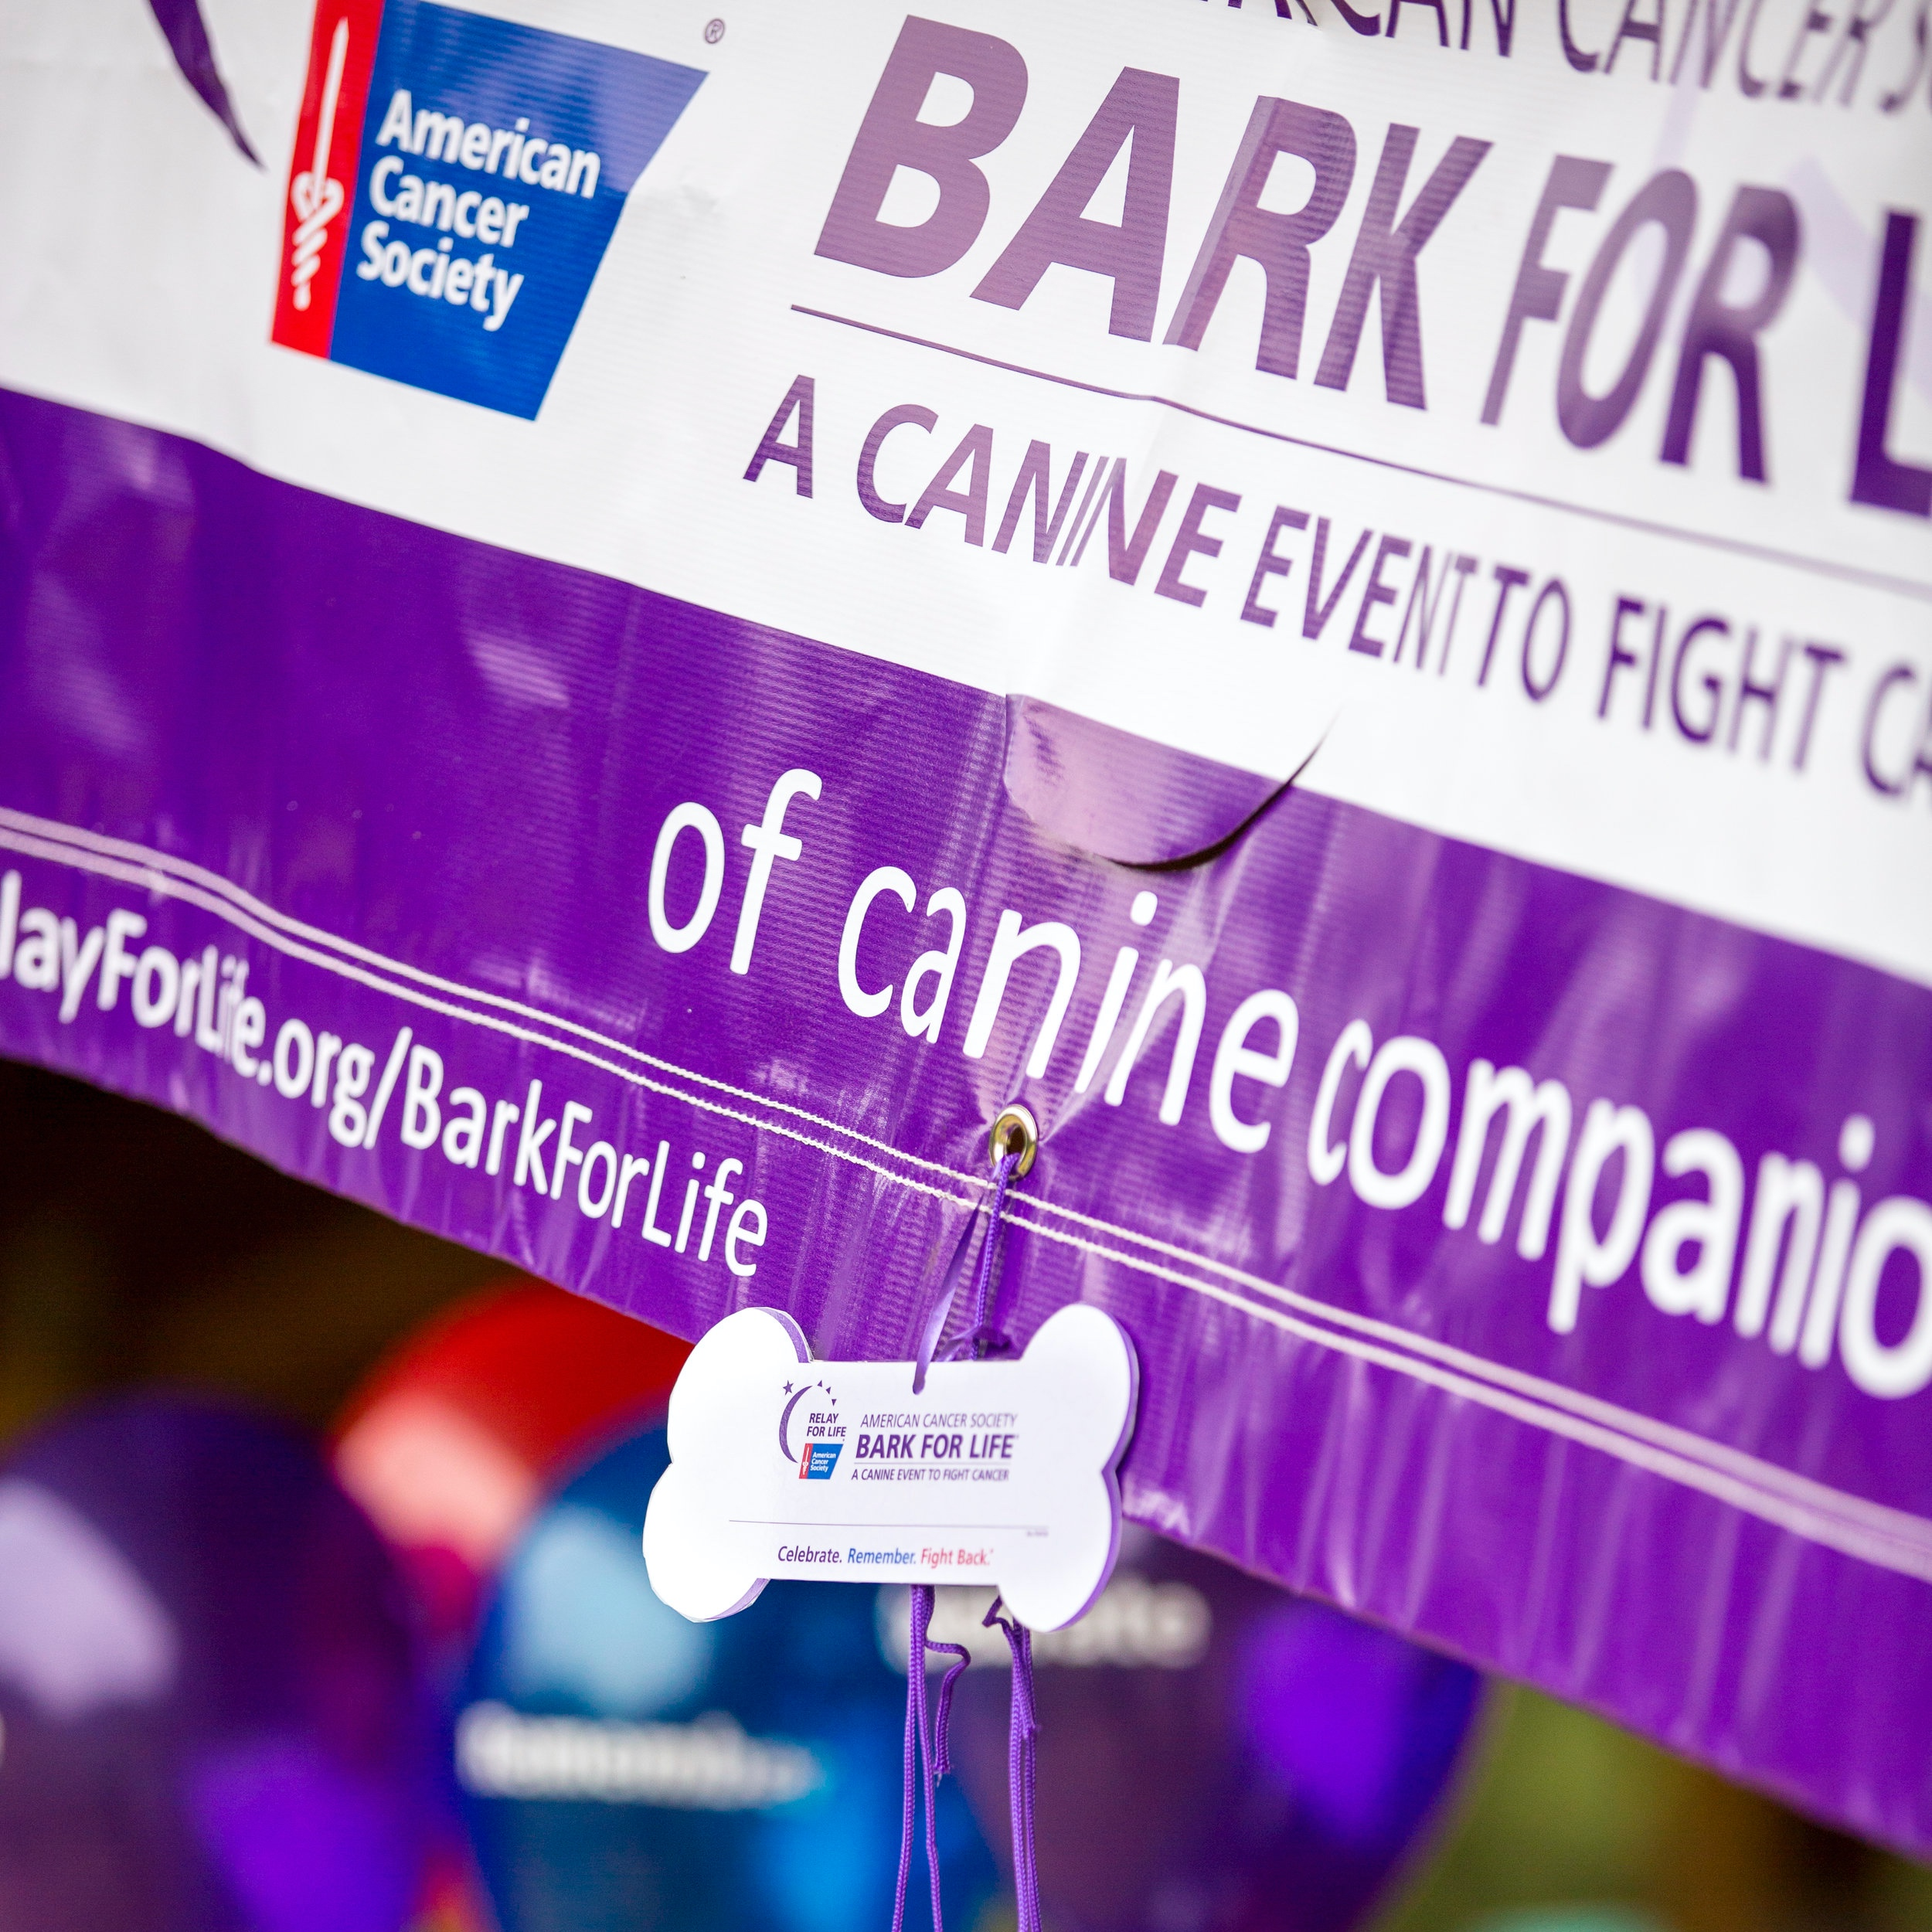 Bark For Life - Through Raise Your Way, Bark For Life is a fundraising event honoring the life-long contributions of our canine caregivers. These dogs demonstrate unconditional love, joy, compassion, and no judgments of cancer survivors' abilities or appearances.